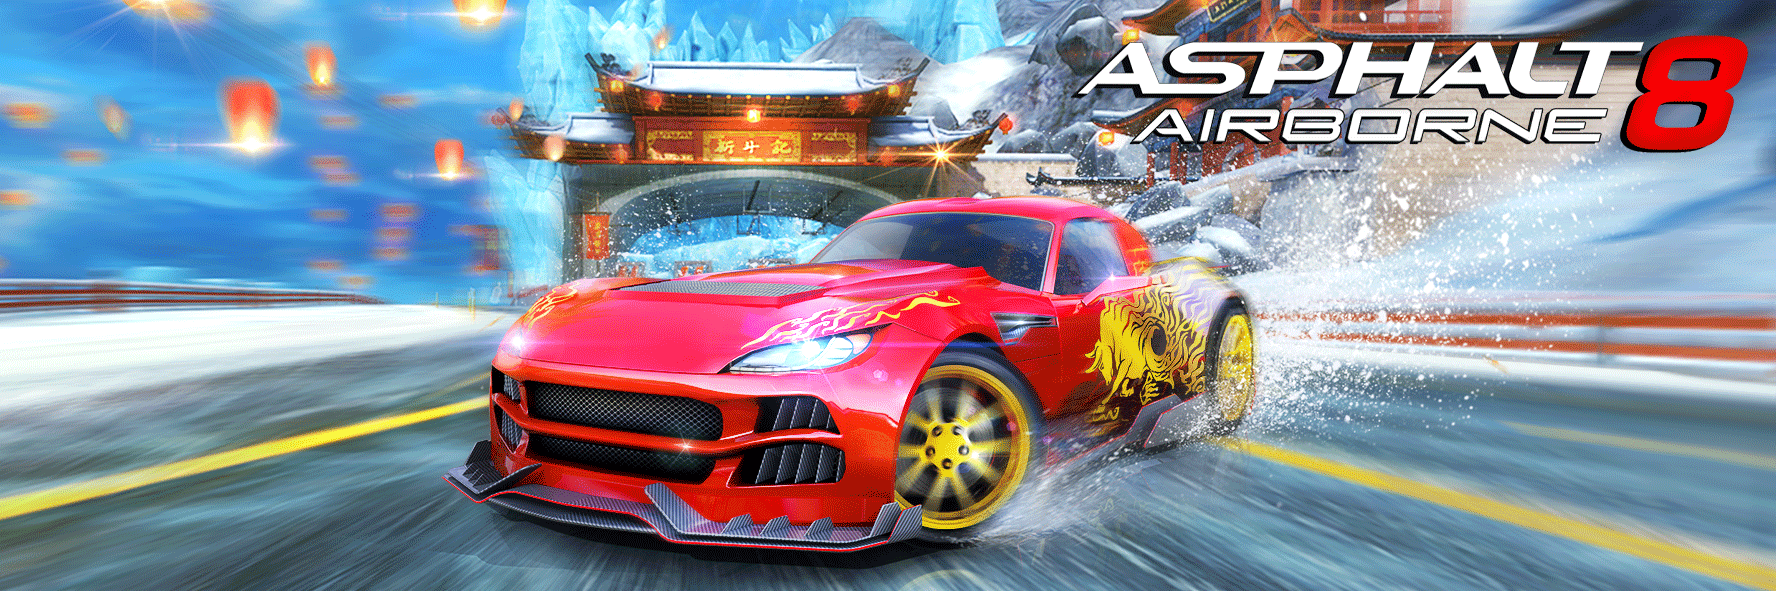 Asphalt 8 Racing Game - Drive, Drift at Real Speed cover